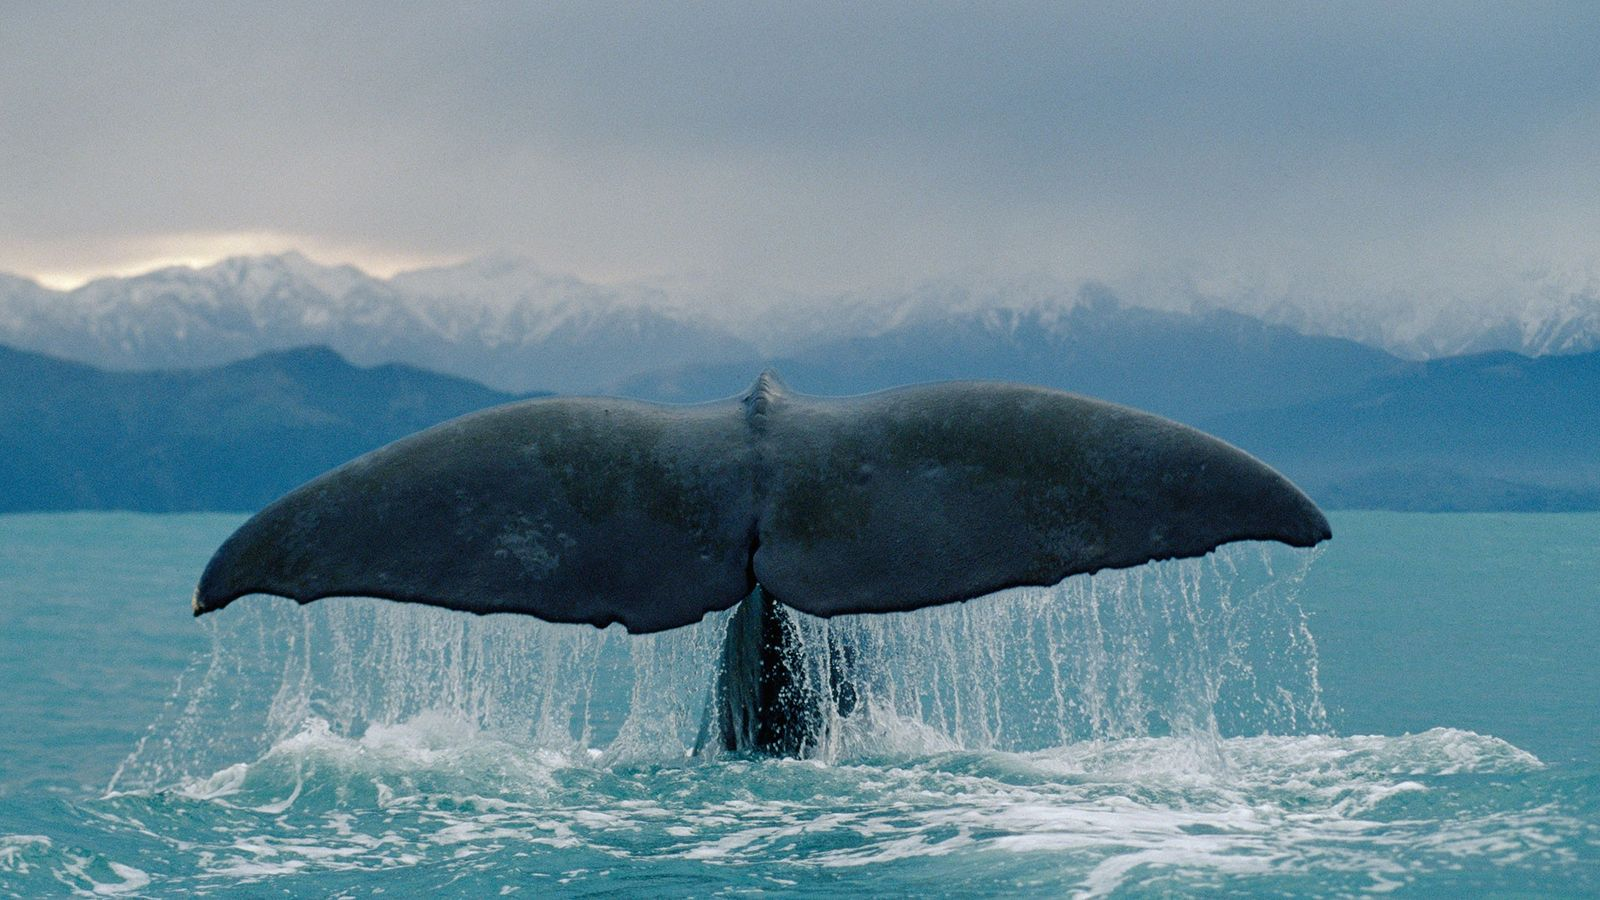 Sperm whales, the largest of the echolocating whales, have powerful sonar ability, says a new book ...